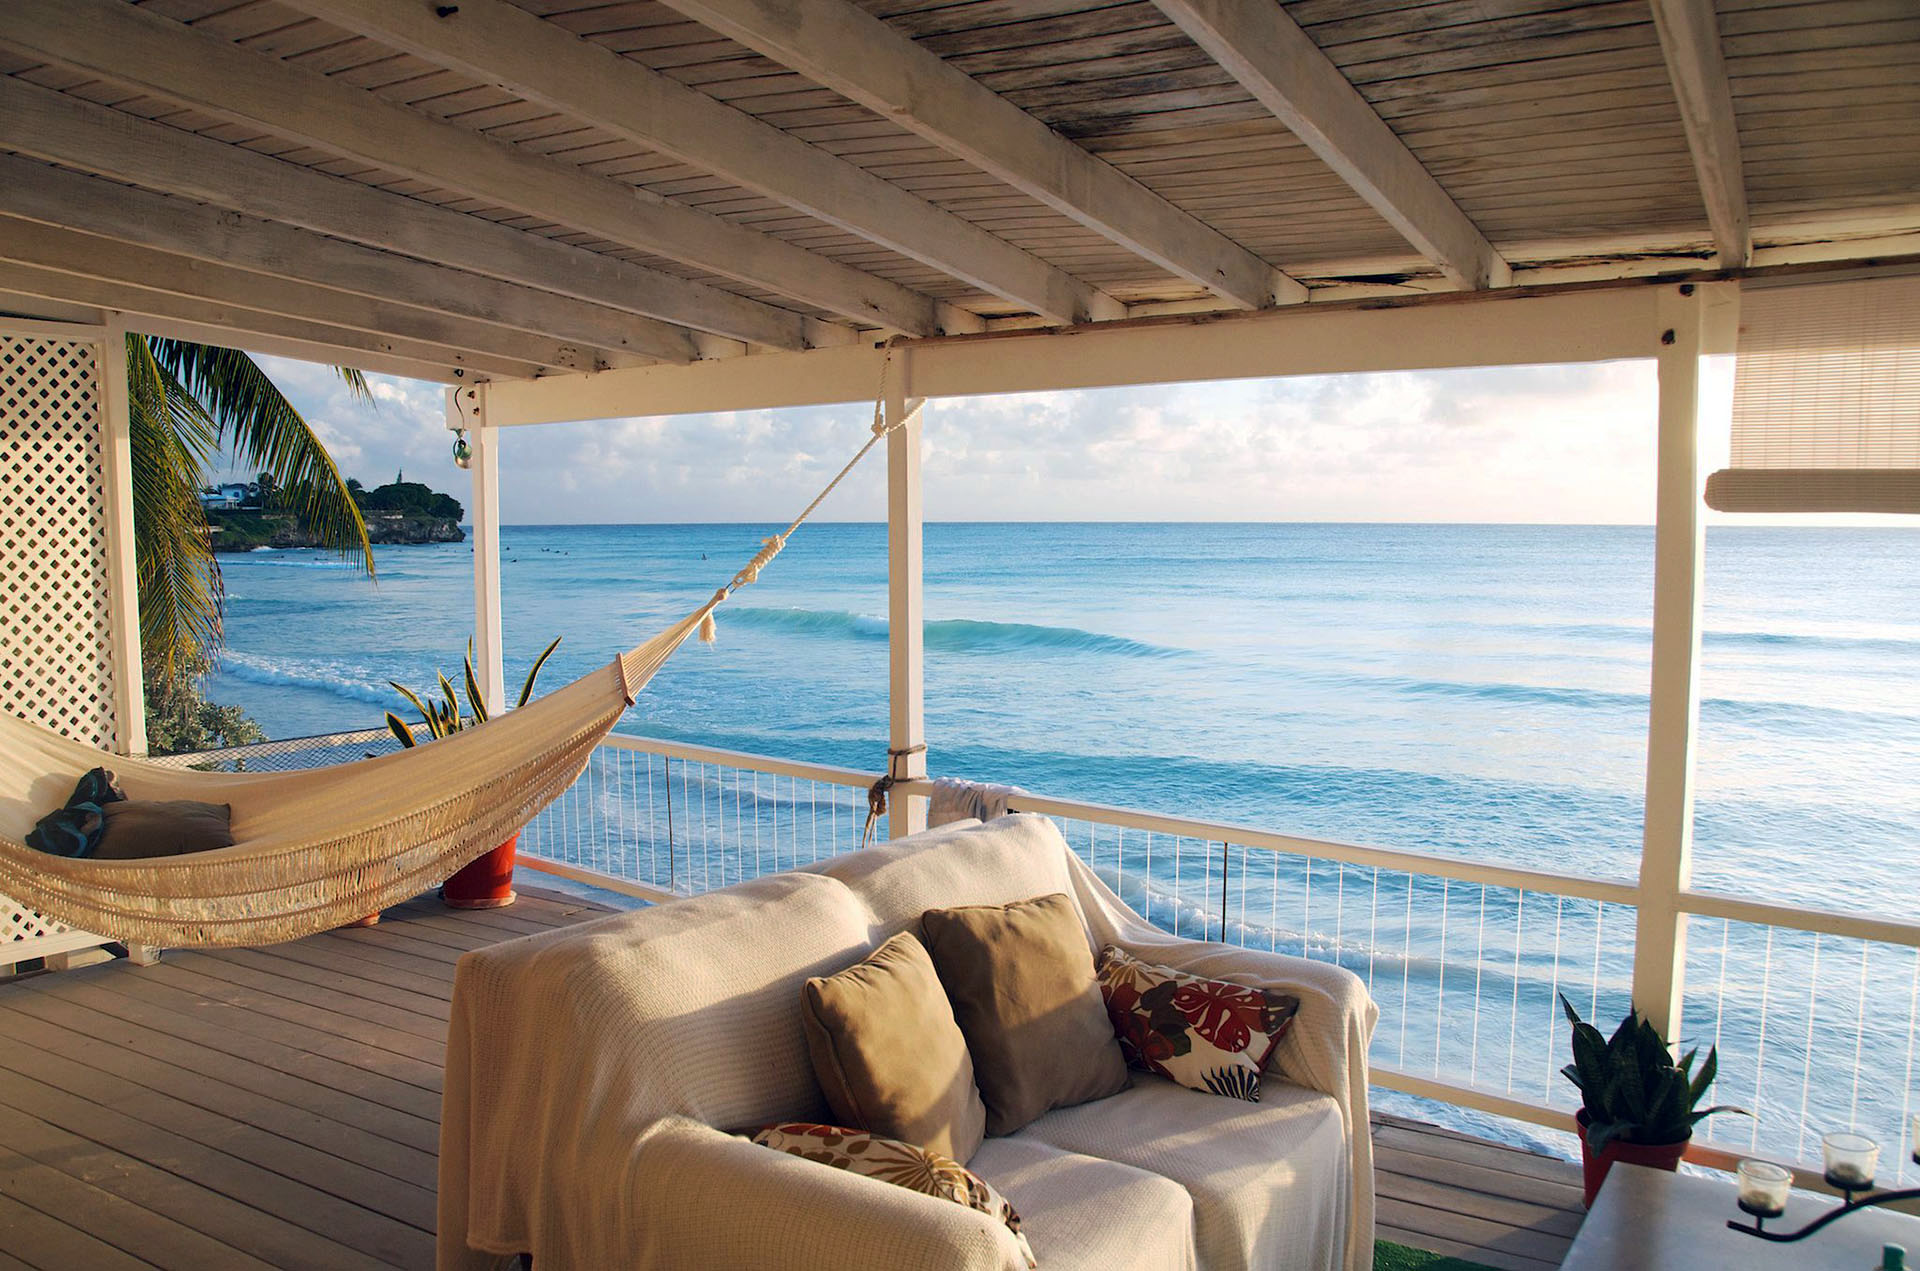 Vacation Rentals Around the World for Any Occasion or Budget